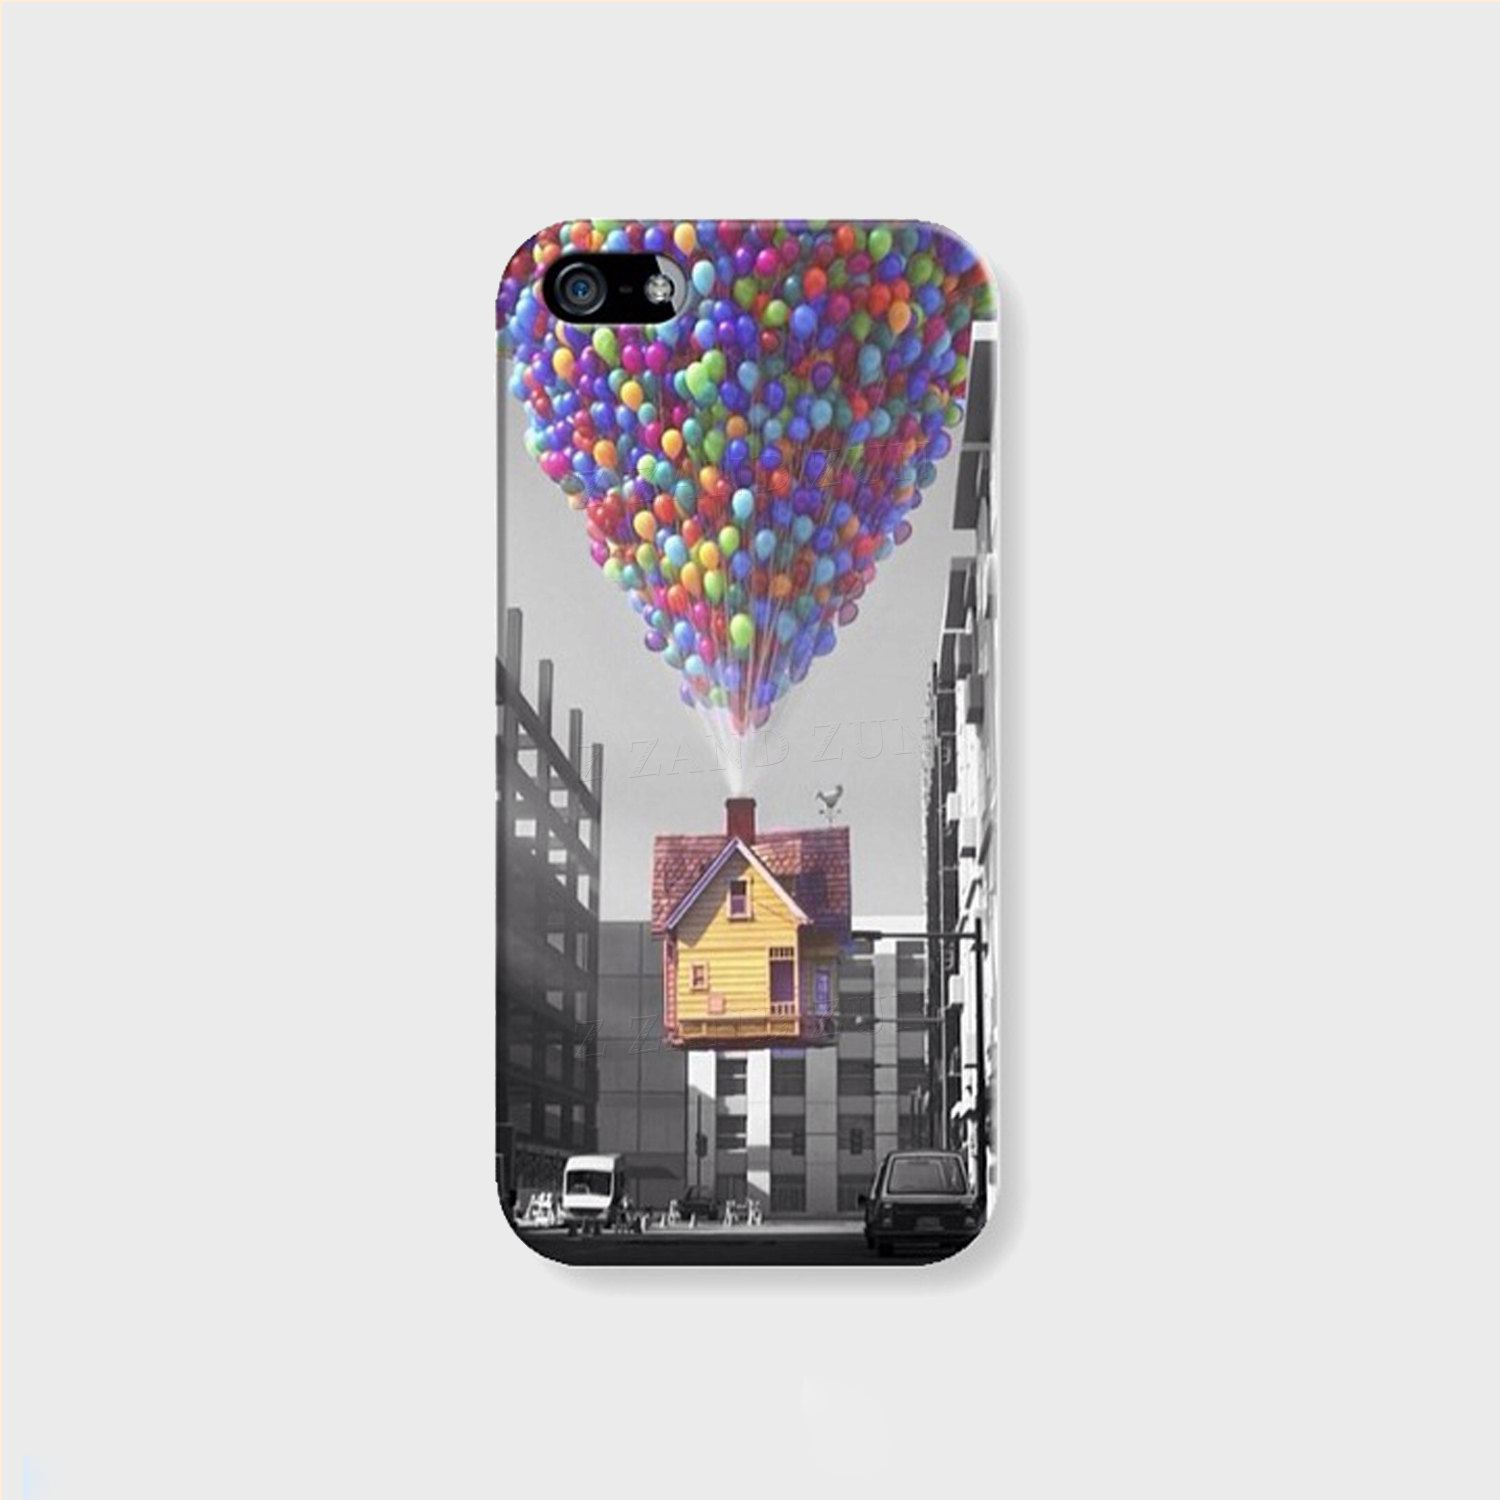 Stylish Christmas iPhone Cases4